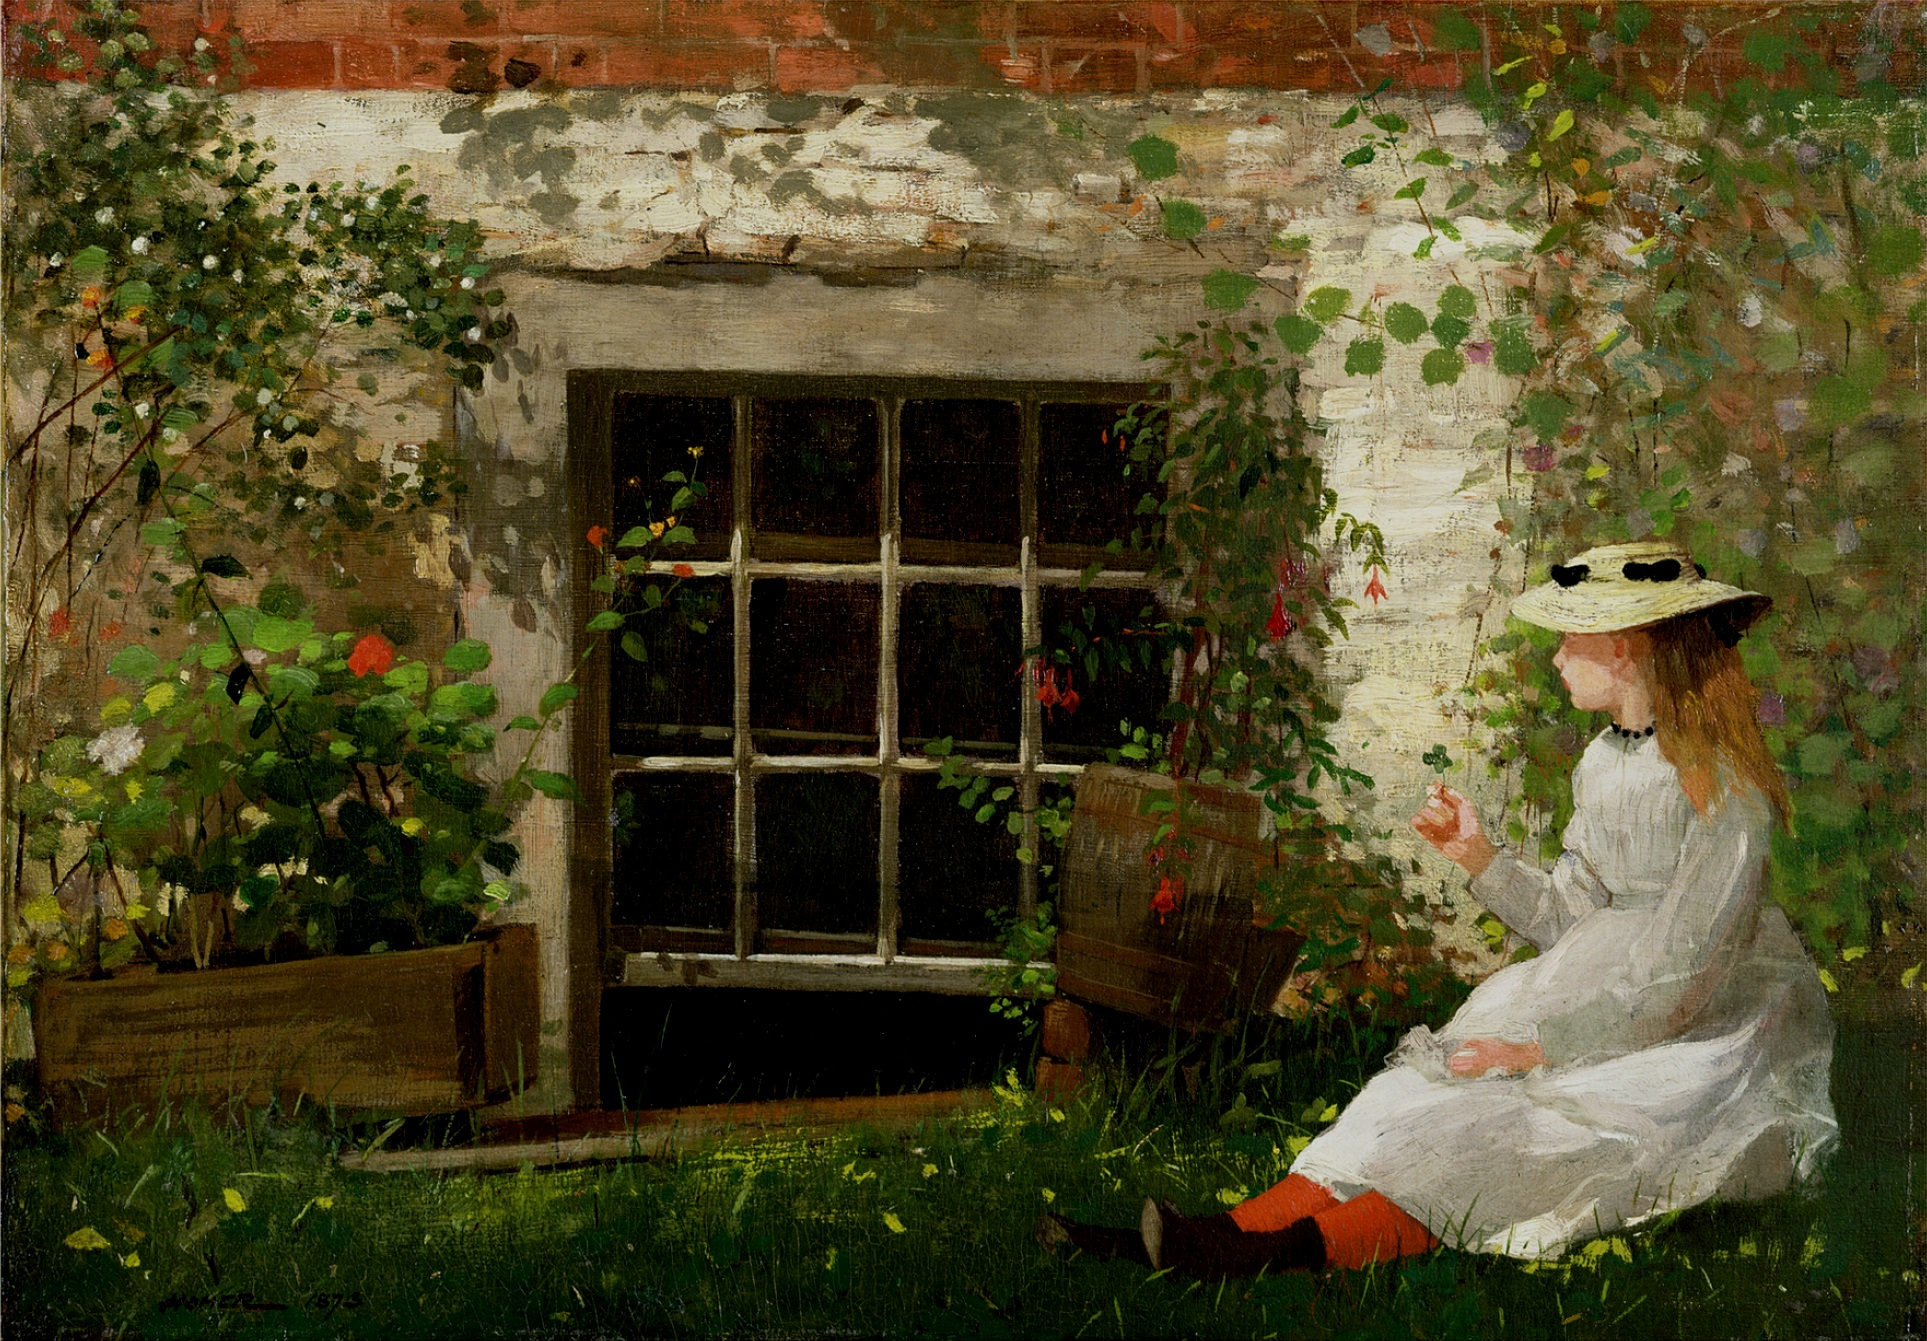 """""""When you paint, try to put down exactly what you see. Whatever else you have to offer will come out anyway."""" - -Winslow Homer"""